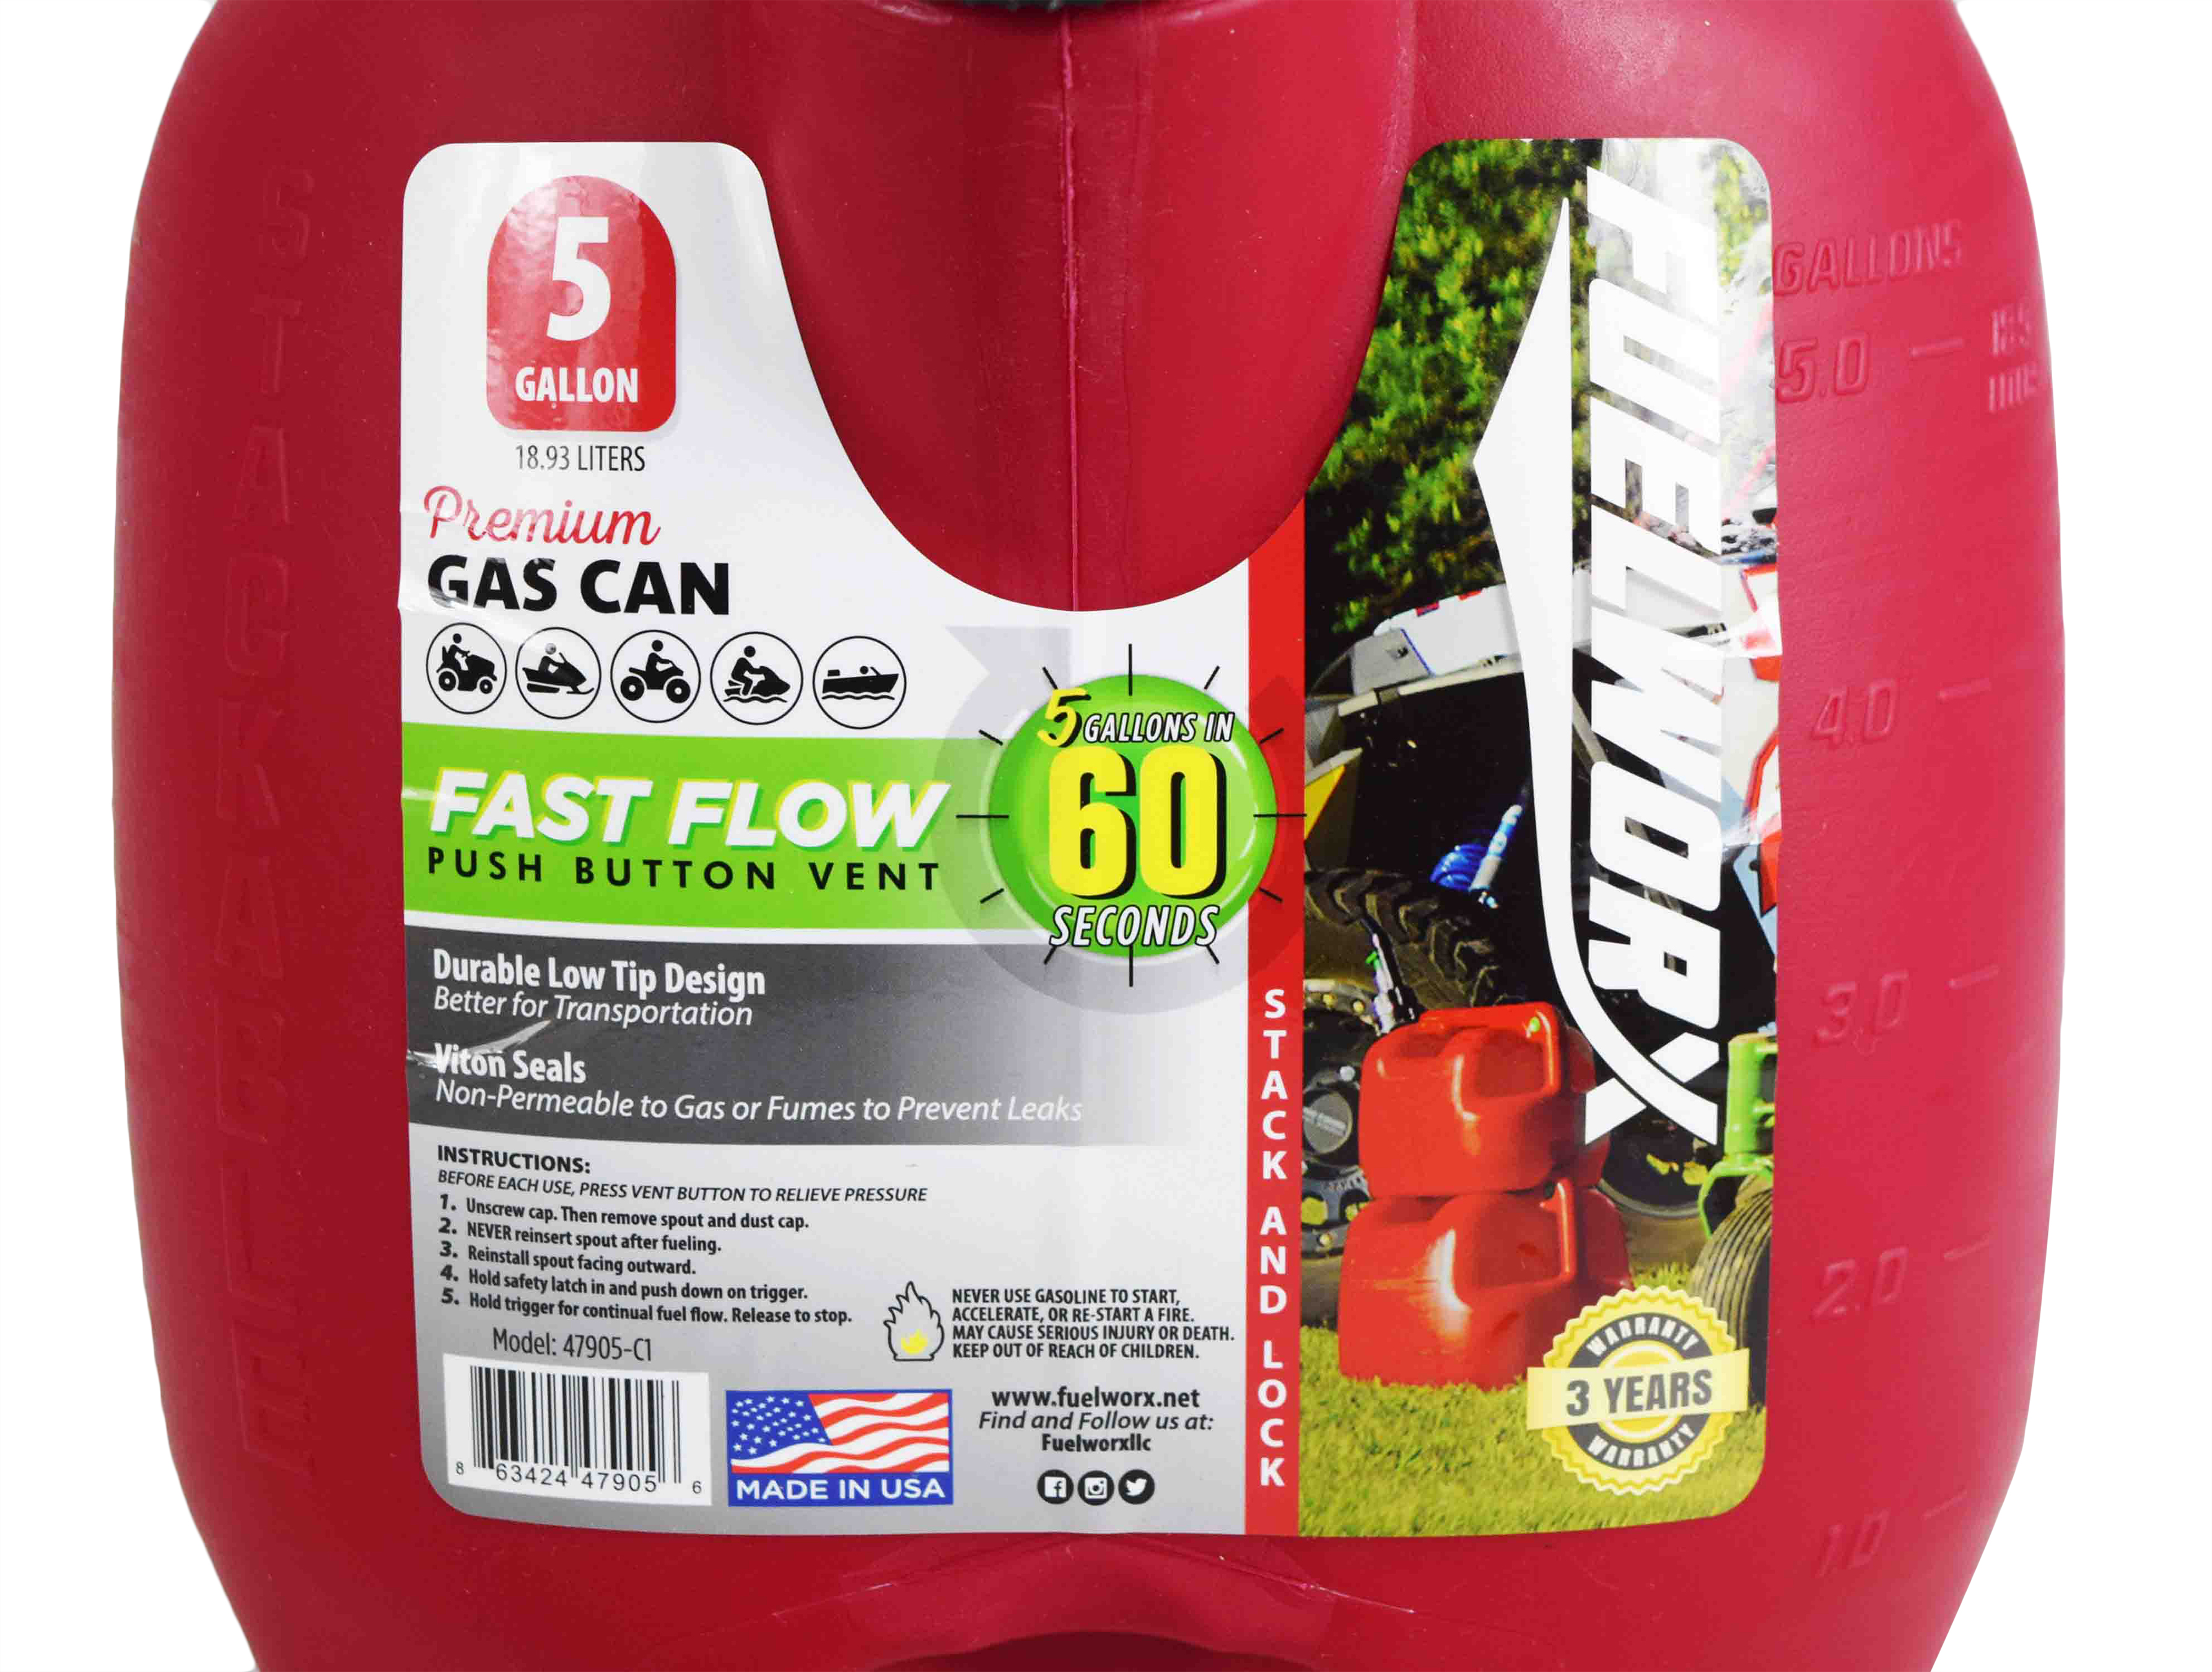 Fuelworx-Red-5-Gallon-Stackable-Fast-Pour-Gas-Fuel-Can-CARB-Compliant-Made-in-The-USA-5-Gallon-Gas-Can-3-Pack-image-8